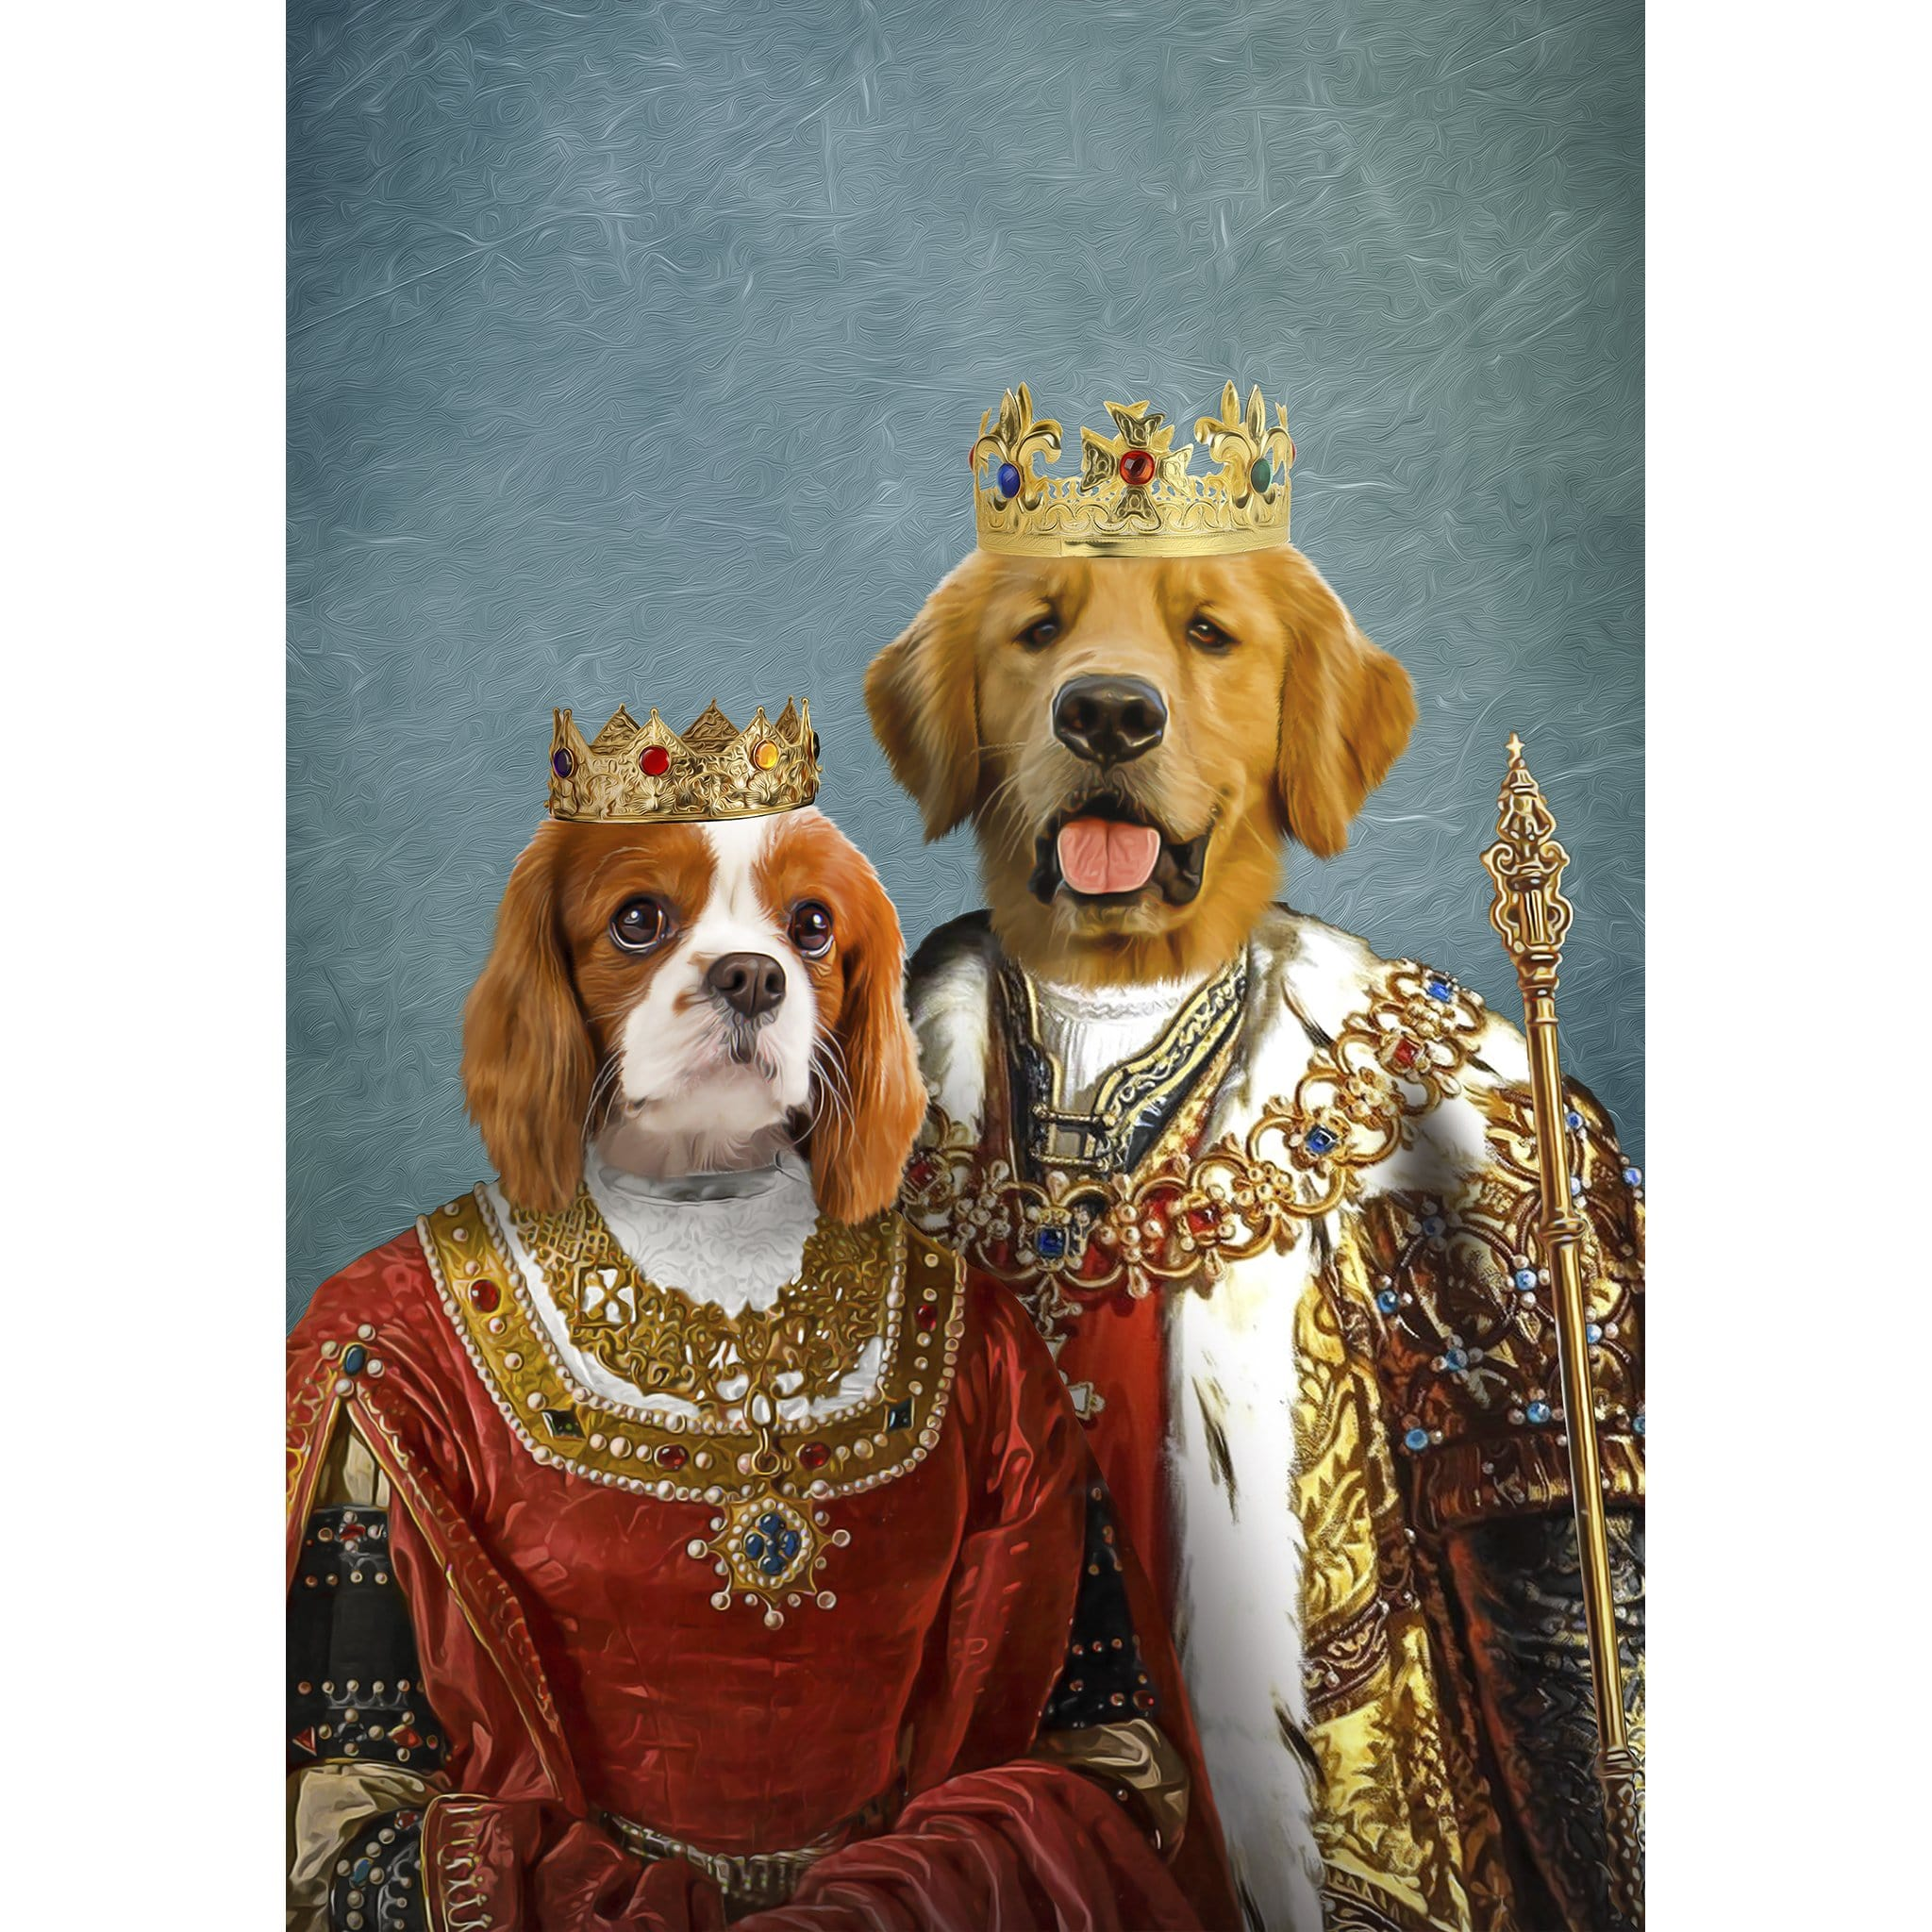 'King and Queen' 2 Pet Digital Portrait